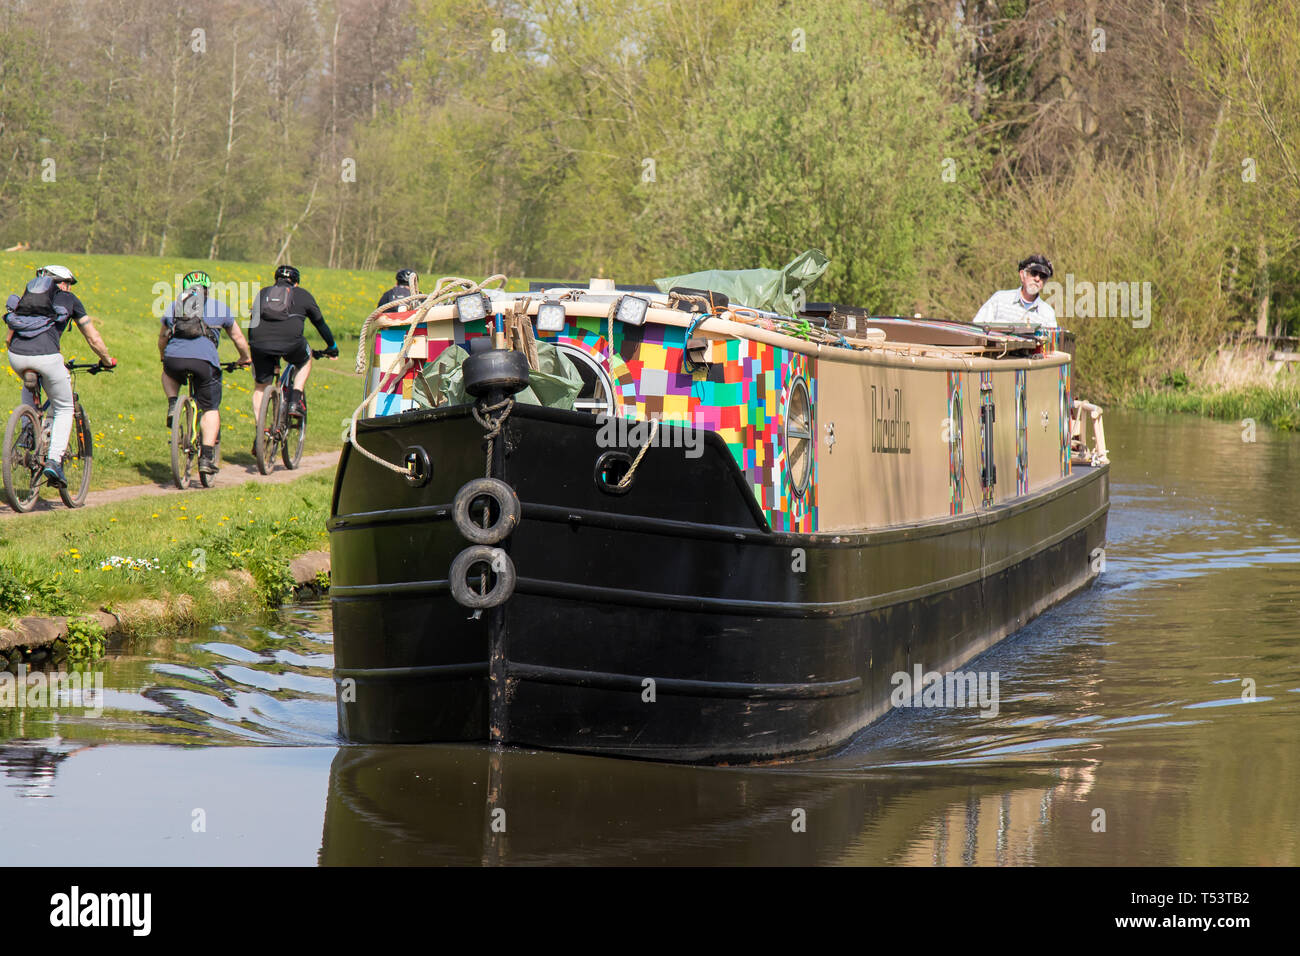 Landscape, close up of oncoming narrowboat travelling on UK canal in spring sunshine, single man steering at rear. Cyclists ride along canal towpath. - Stock Image